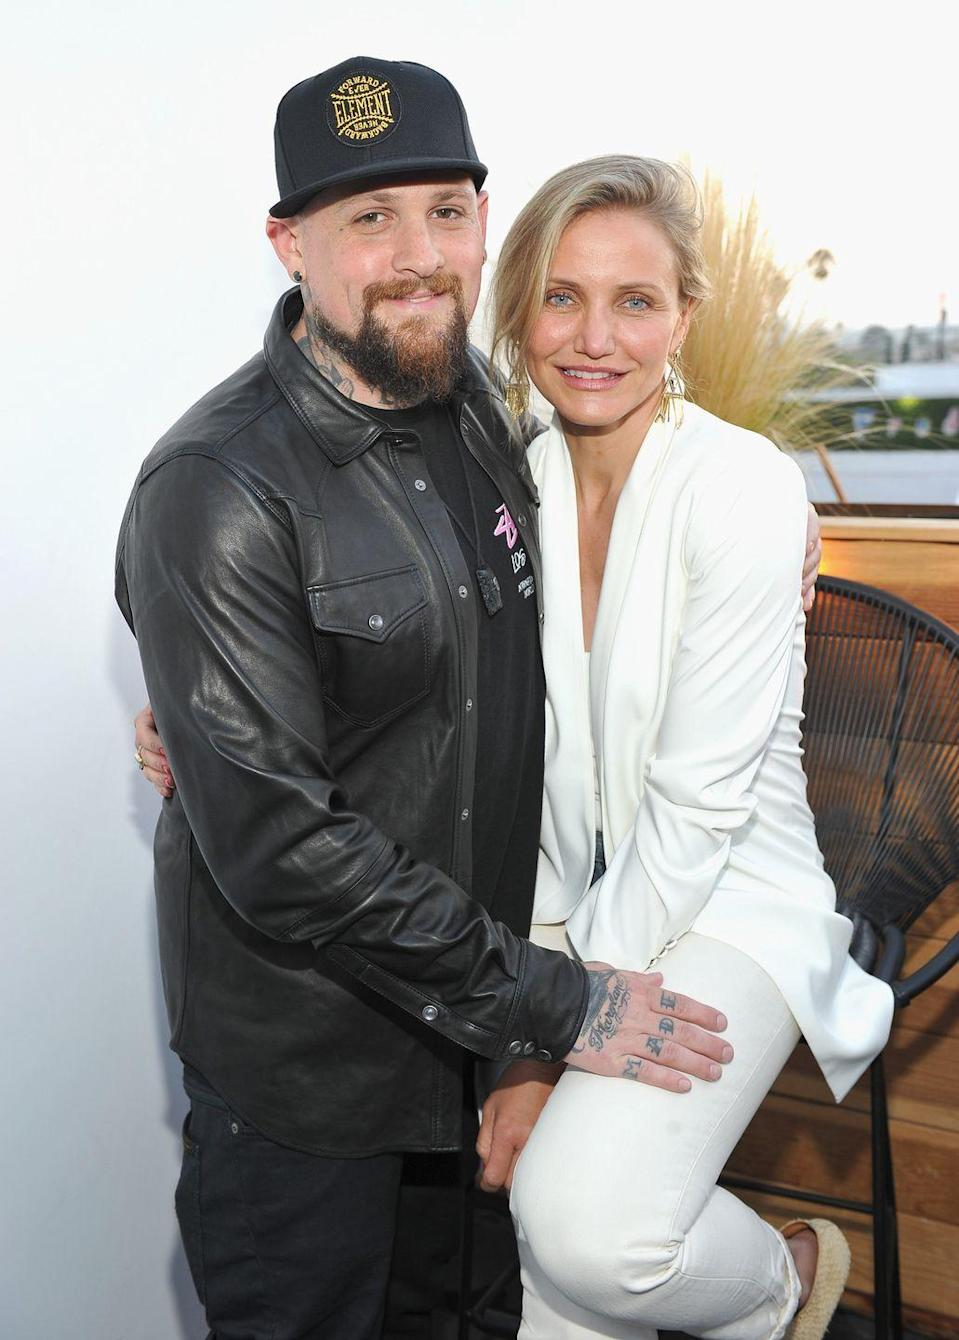 "<p>Nicole Richie is behind this pairing. The reality star, who is married to Madden's brother, Joel, took credit for the couple during an appearance on <a href=""https://www.usmagazine.com/celebrity-news/news/nicole-richie-talks-cameron-diaz-and-benji-madden-is-happy-for-them-201497/"" rel=""nofollow noopener"" target=""_blank"" data-ylk=""slk:Watch What Happens Live"" class=""link rapid-noclick-resp"">Watch What Happens Live</a>.</p><p>""I approve of anything that's going to make Benji happy,"" she said. ""I'm going to take responsibility for everything!"" </p>"